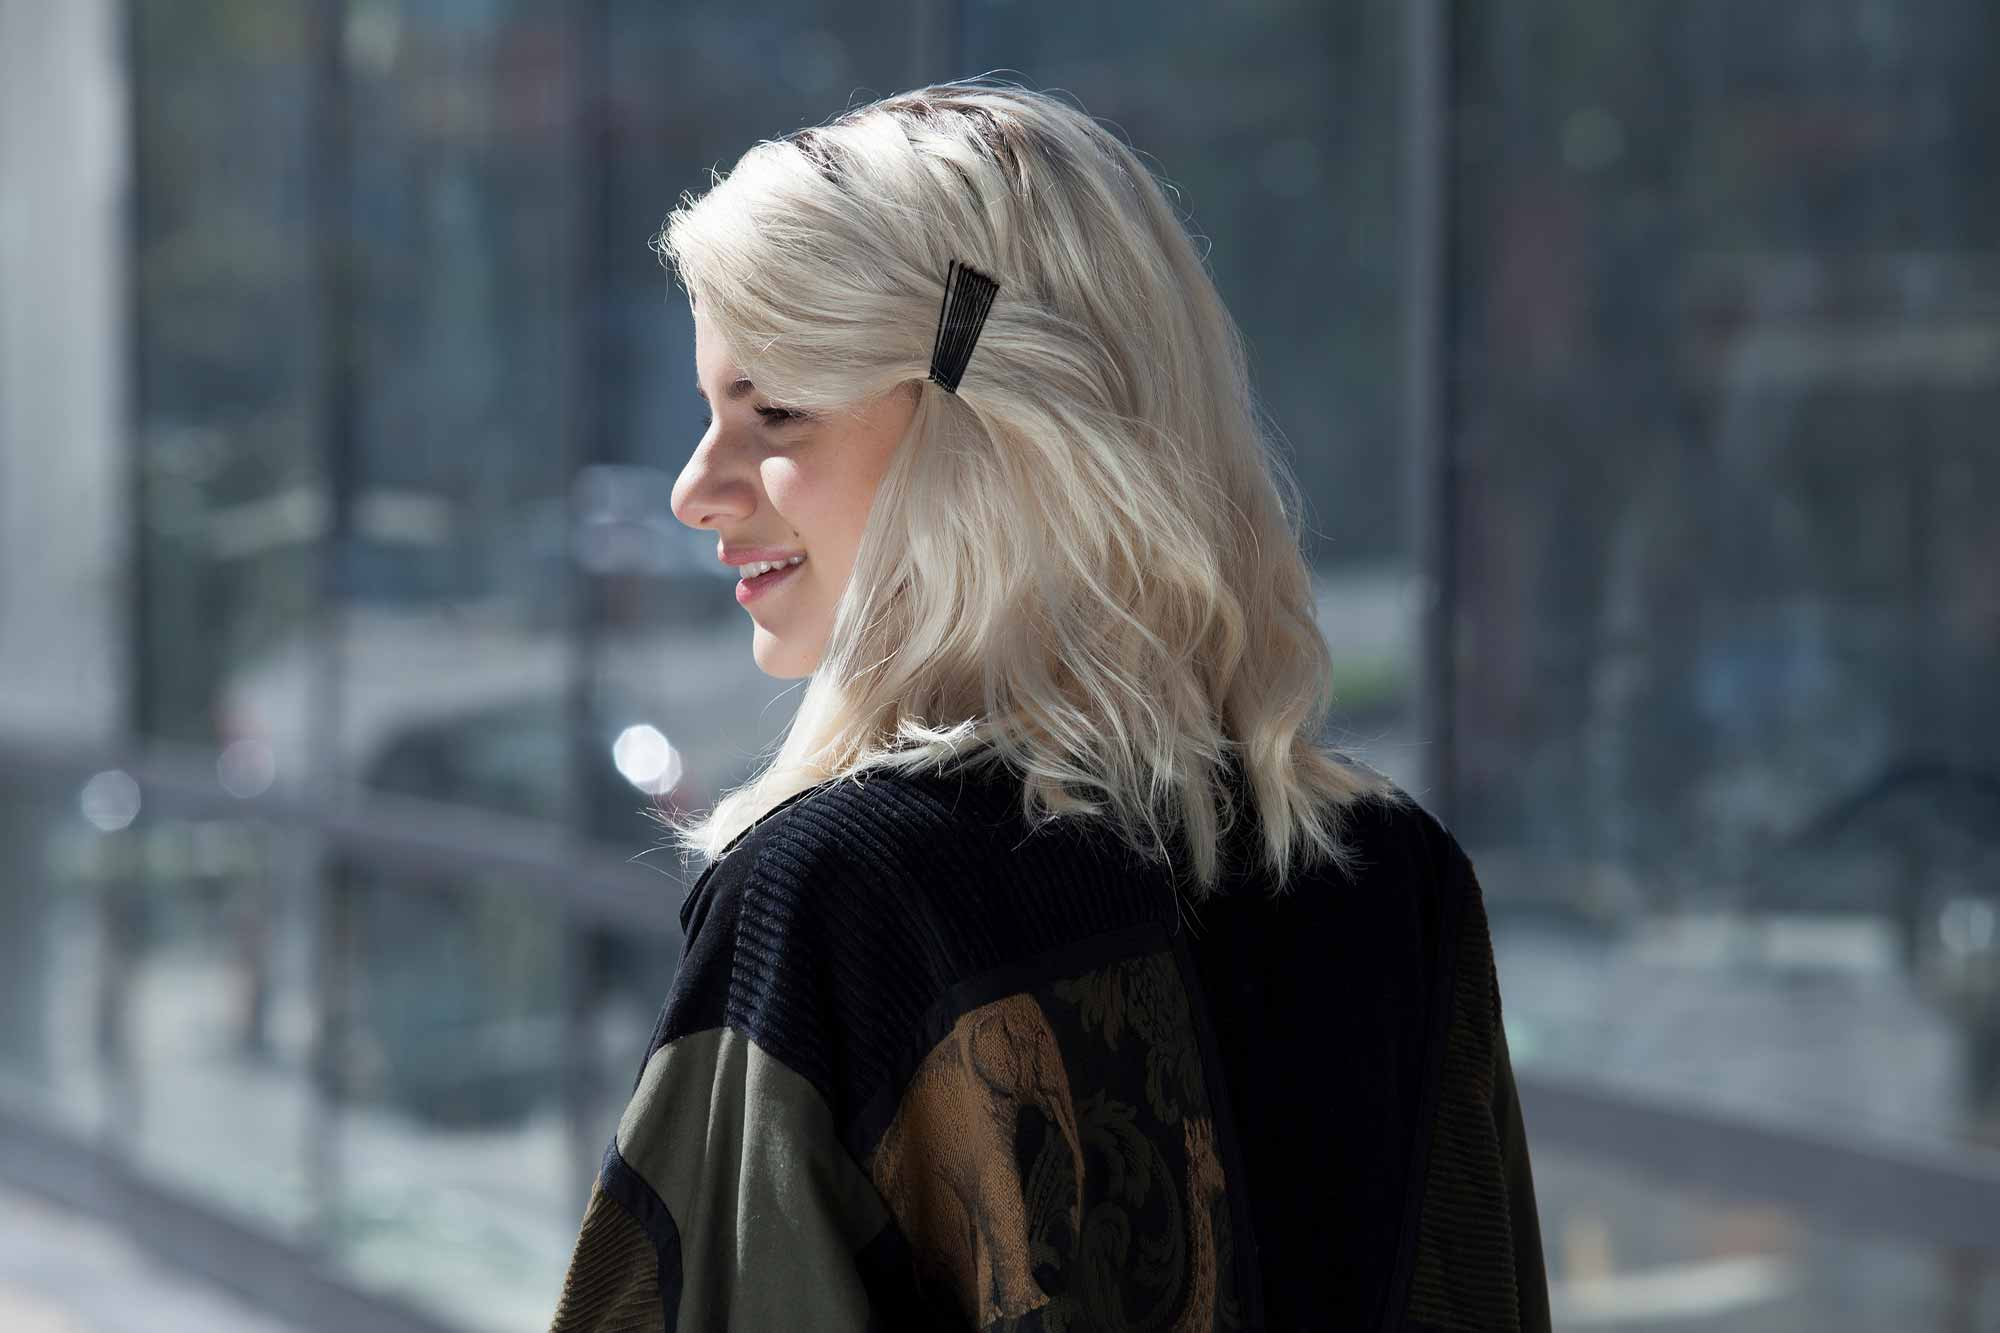 Bobby pin hairstyles: close up shot of a woman with platinum blonder hair with bobby pinned back fringe